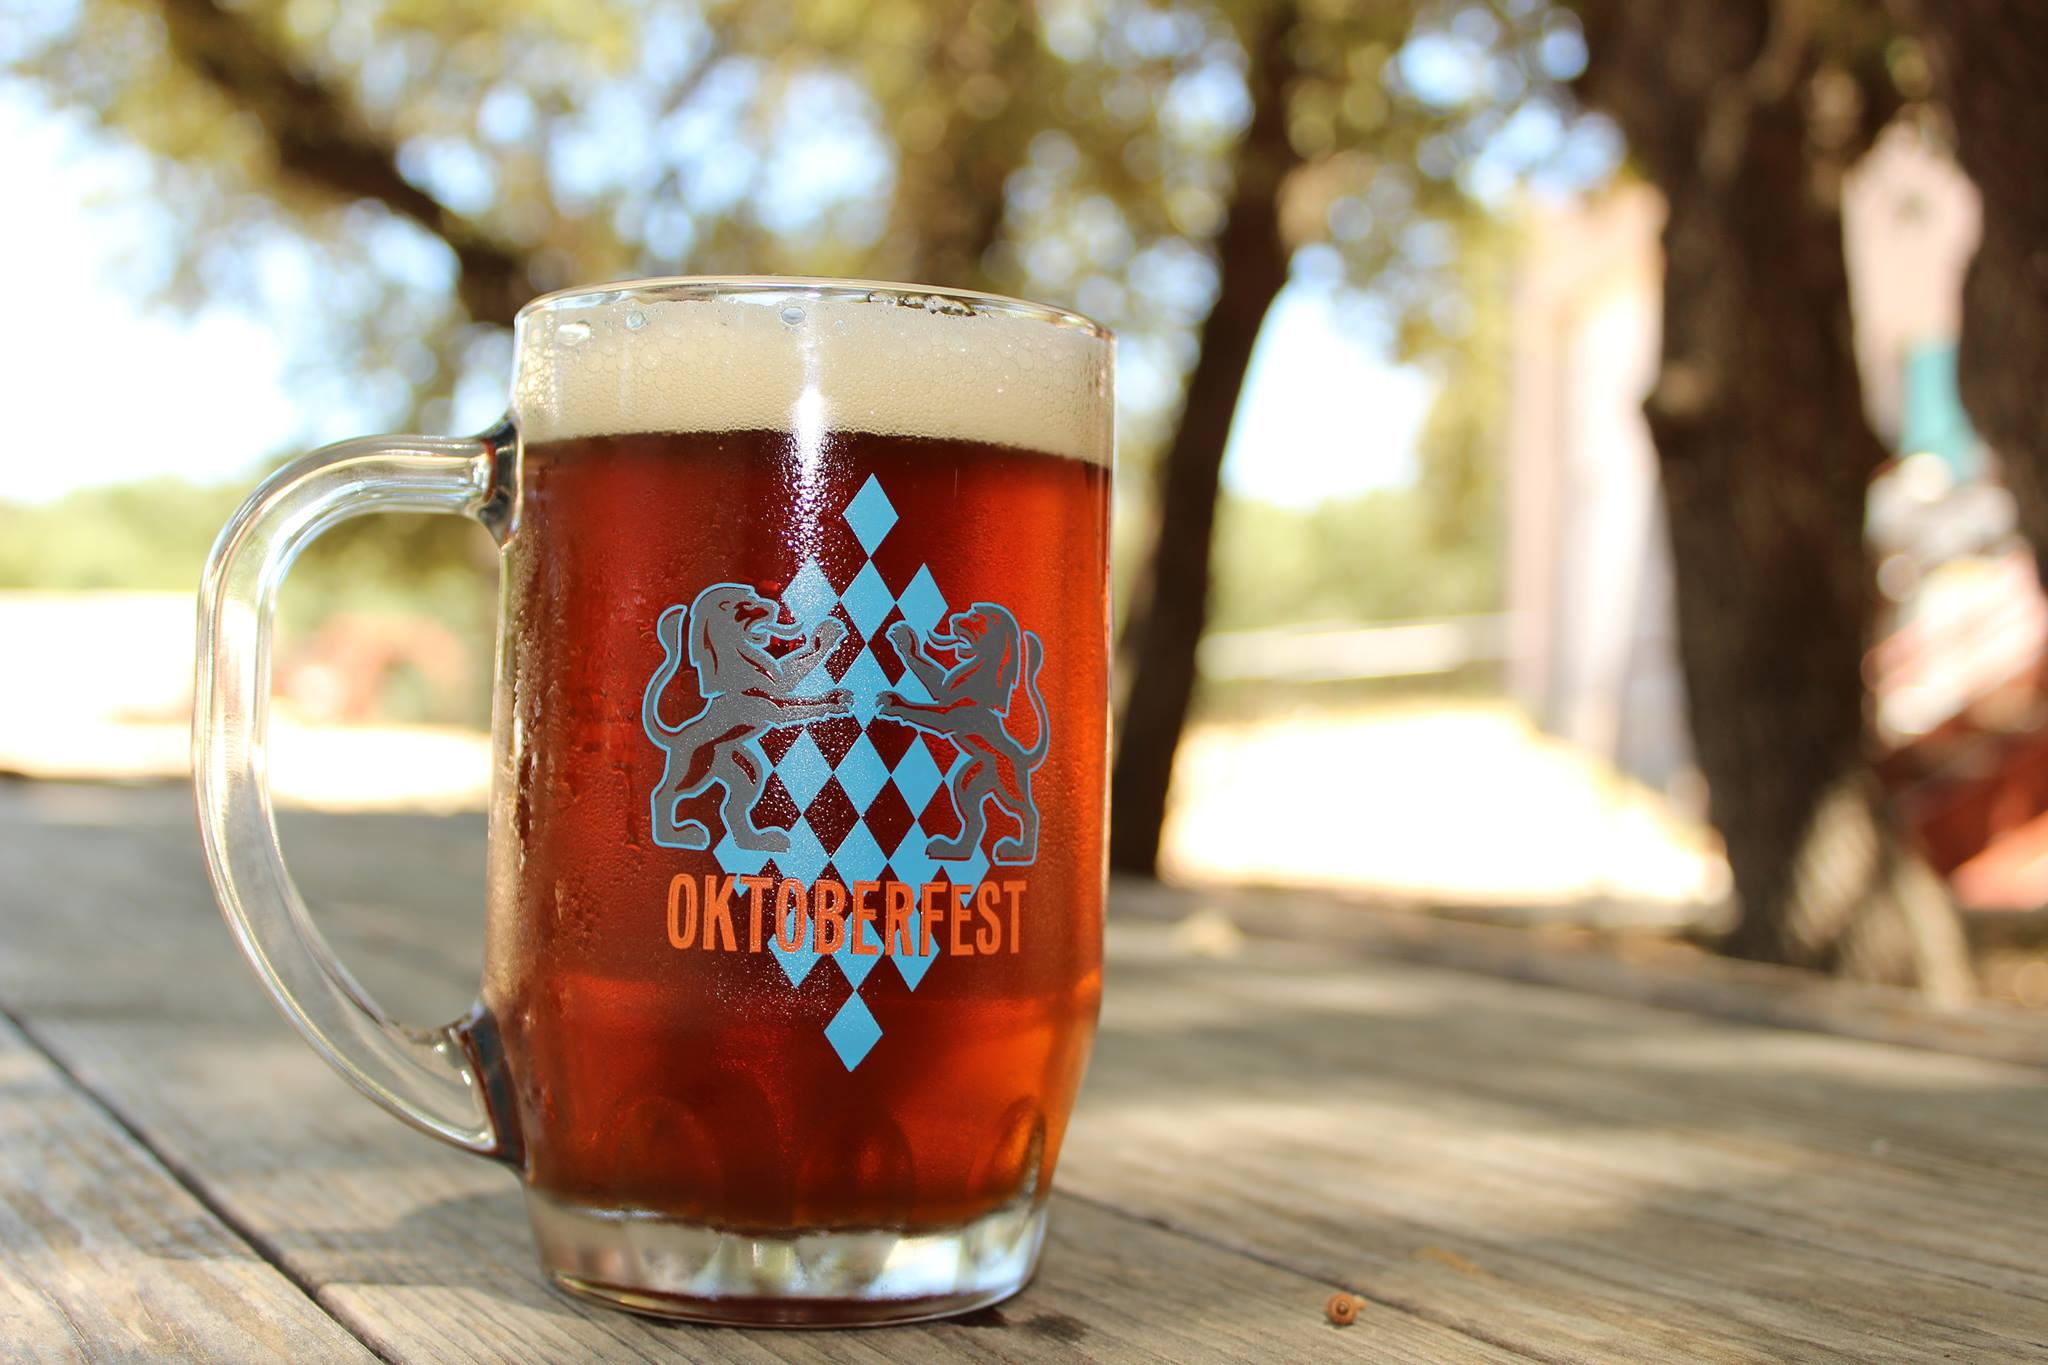 Image Source:  Real Ale Brewing Company